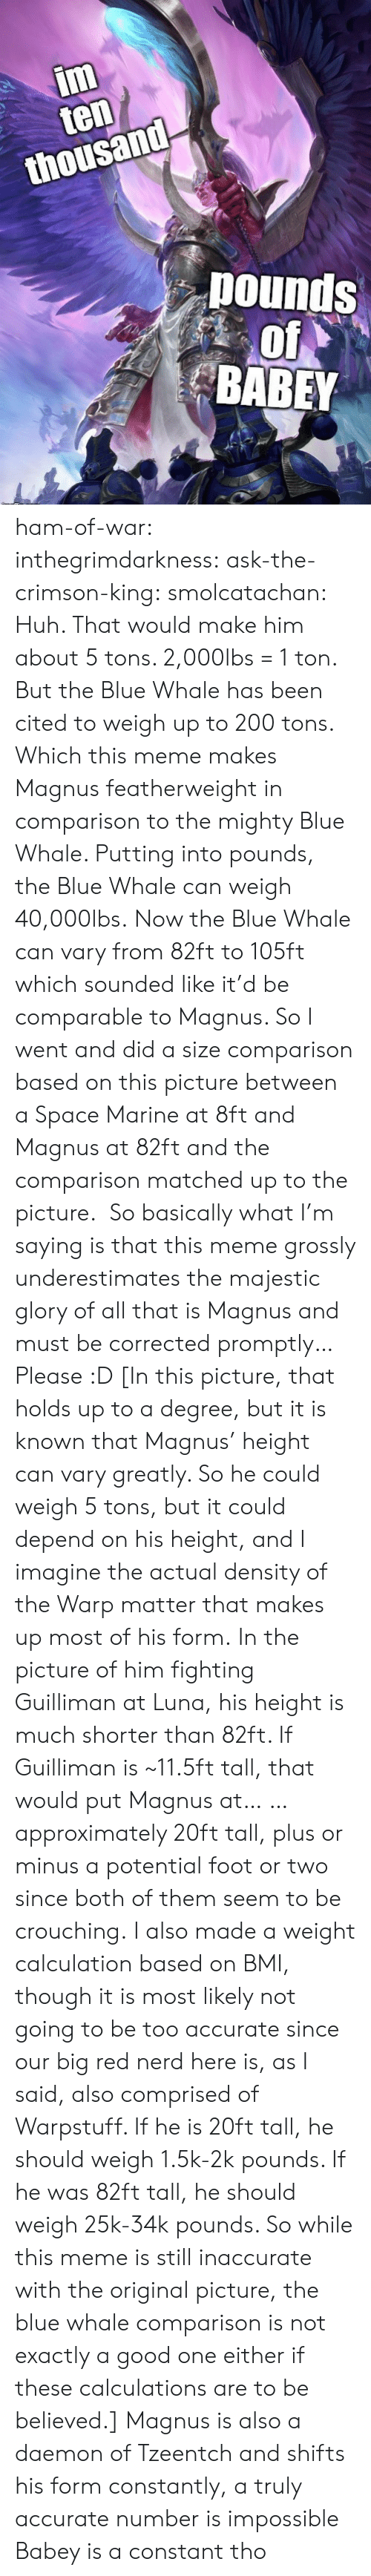 Likely: im  ten  thousand  pounds  of  BABEY ham-of-war: inthegrimdarkness:   ask-the-crimson-king:   smolcatachan:  Huh. That would make him about 5 tons. 2,000lbs = 1 ton. But the Blue Whale has been cited to weigh up to 200 tons. Which this meme makes Magnus featherweight in comparison to the mighty Blue Whale. Putting into pounds, the Blue Whale can weigh 40,000lbs. Now the Blue Whale can vary from 82ft to 105ft which sounded like it'd be comparable to Magnus. So I went and did a size comparison based on this picture between a Space Marine at 8ft and Magnus at 82ft and the comparison matched up to the picture.  So basically what I'm saying is that this meme grossly underestimates the majestic glory of all that is Magnus and must be corrected promptly…Please :D  [In this picture, that holds up to a degree, but it is known that Magnus' height can vary greatly. So he could weigh 5 tons, but it could depend on his height, and I imagine the actual density of the Warp matter that makes up most of his form. In the picture of him fighting Guilliman at Luna, his height is much shorter than 82ft. If Guilliman is ~11.5ft tall, that would put Magnus at… … approximately 20ft tall, plus or minus a potential foot or two since both of them seem to be crouching. I also made a weight calculation based on BMI, though it is most likely not going to be too accurate since our big red nerd here is, as I said, also comprised of Warpstuff. If he is 20ft tall, he should weigh 1.5k-2k pounds. If he was 82ft tall, he should weigh 25k-34k pounds. So while this meme is still inaccurate with the original picture, the blue whale comparison is not exactly a good one either if these calculations are to be believed.]   Magnus is also a daemon of Tzeentch and shifts his form constantly, a truly accurate number is impossible    Babey is a constant tho